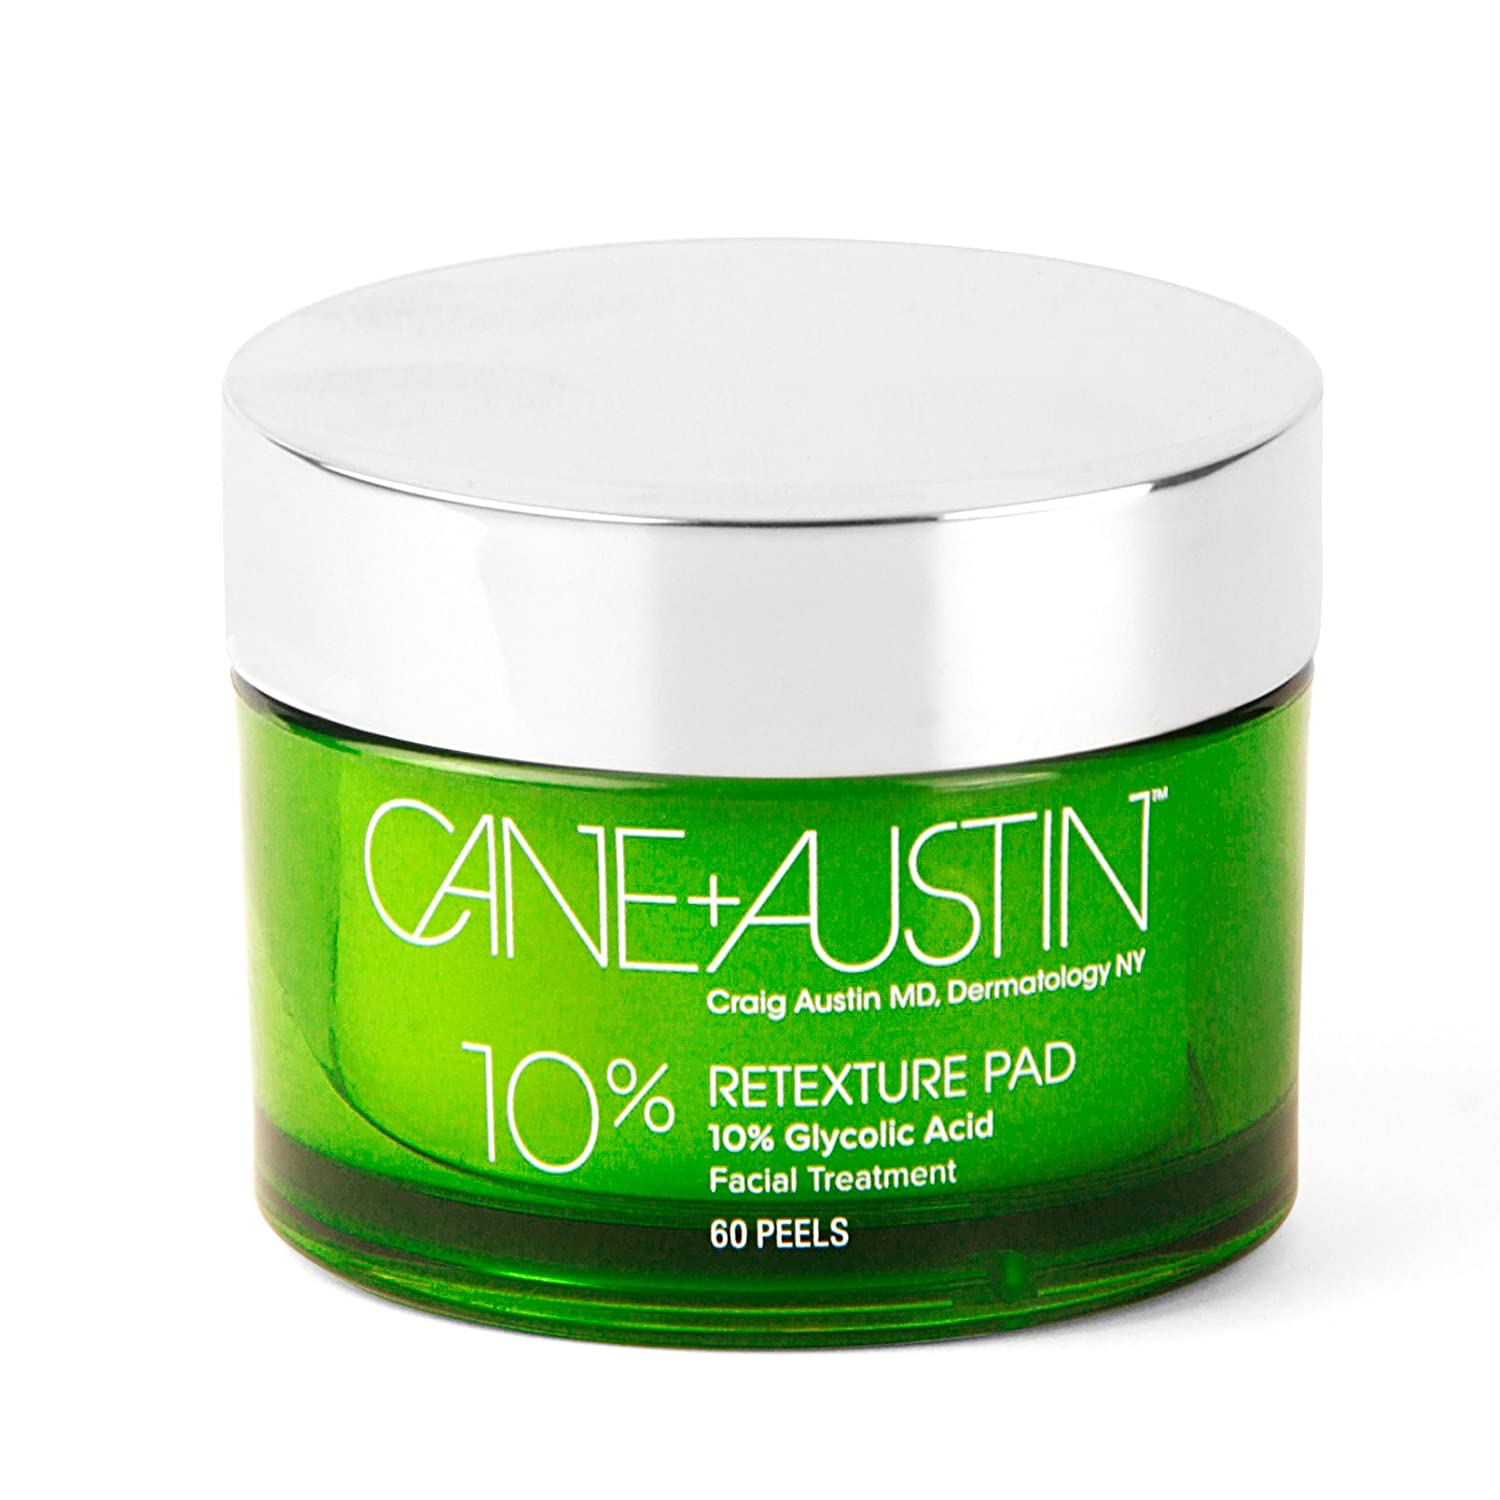 CANE + AUSTIN Retexturizing Face Treatment Pad Peel